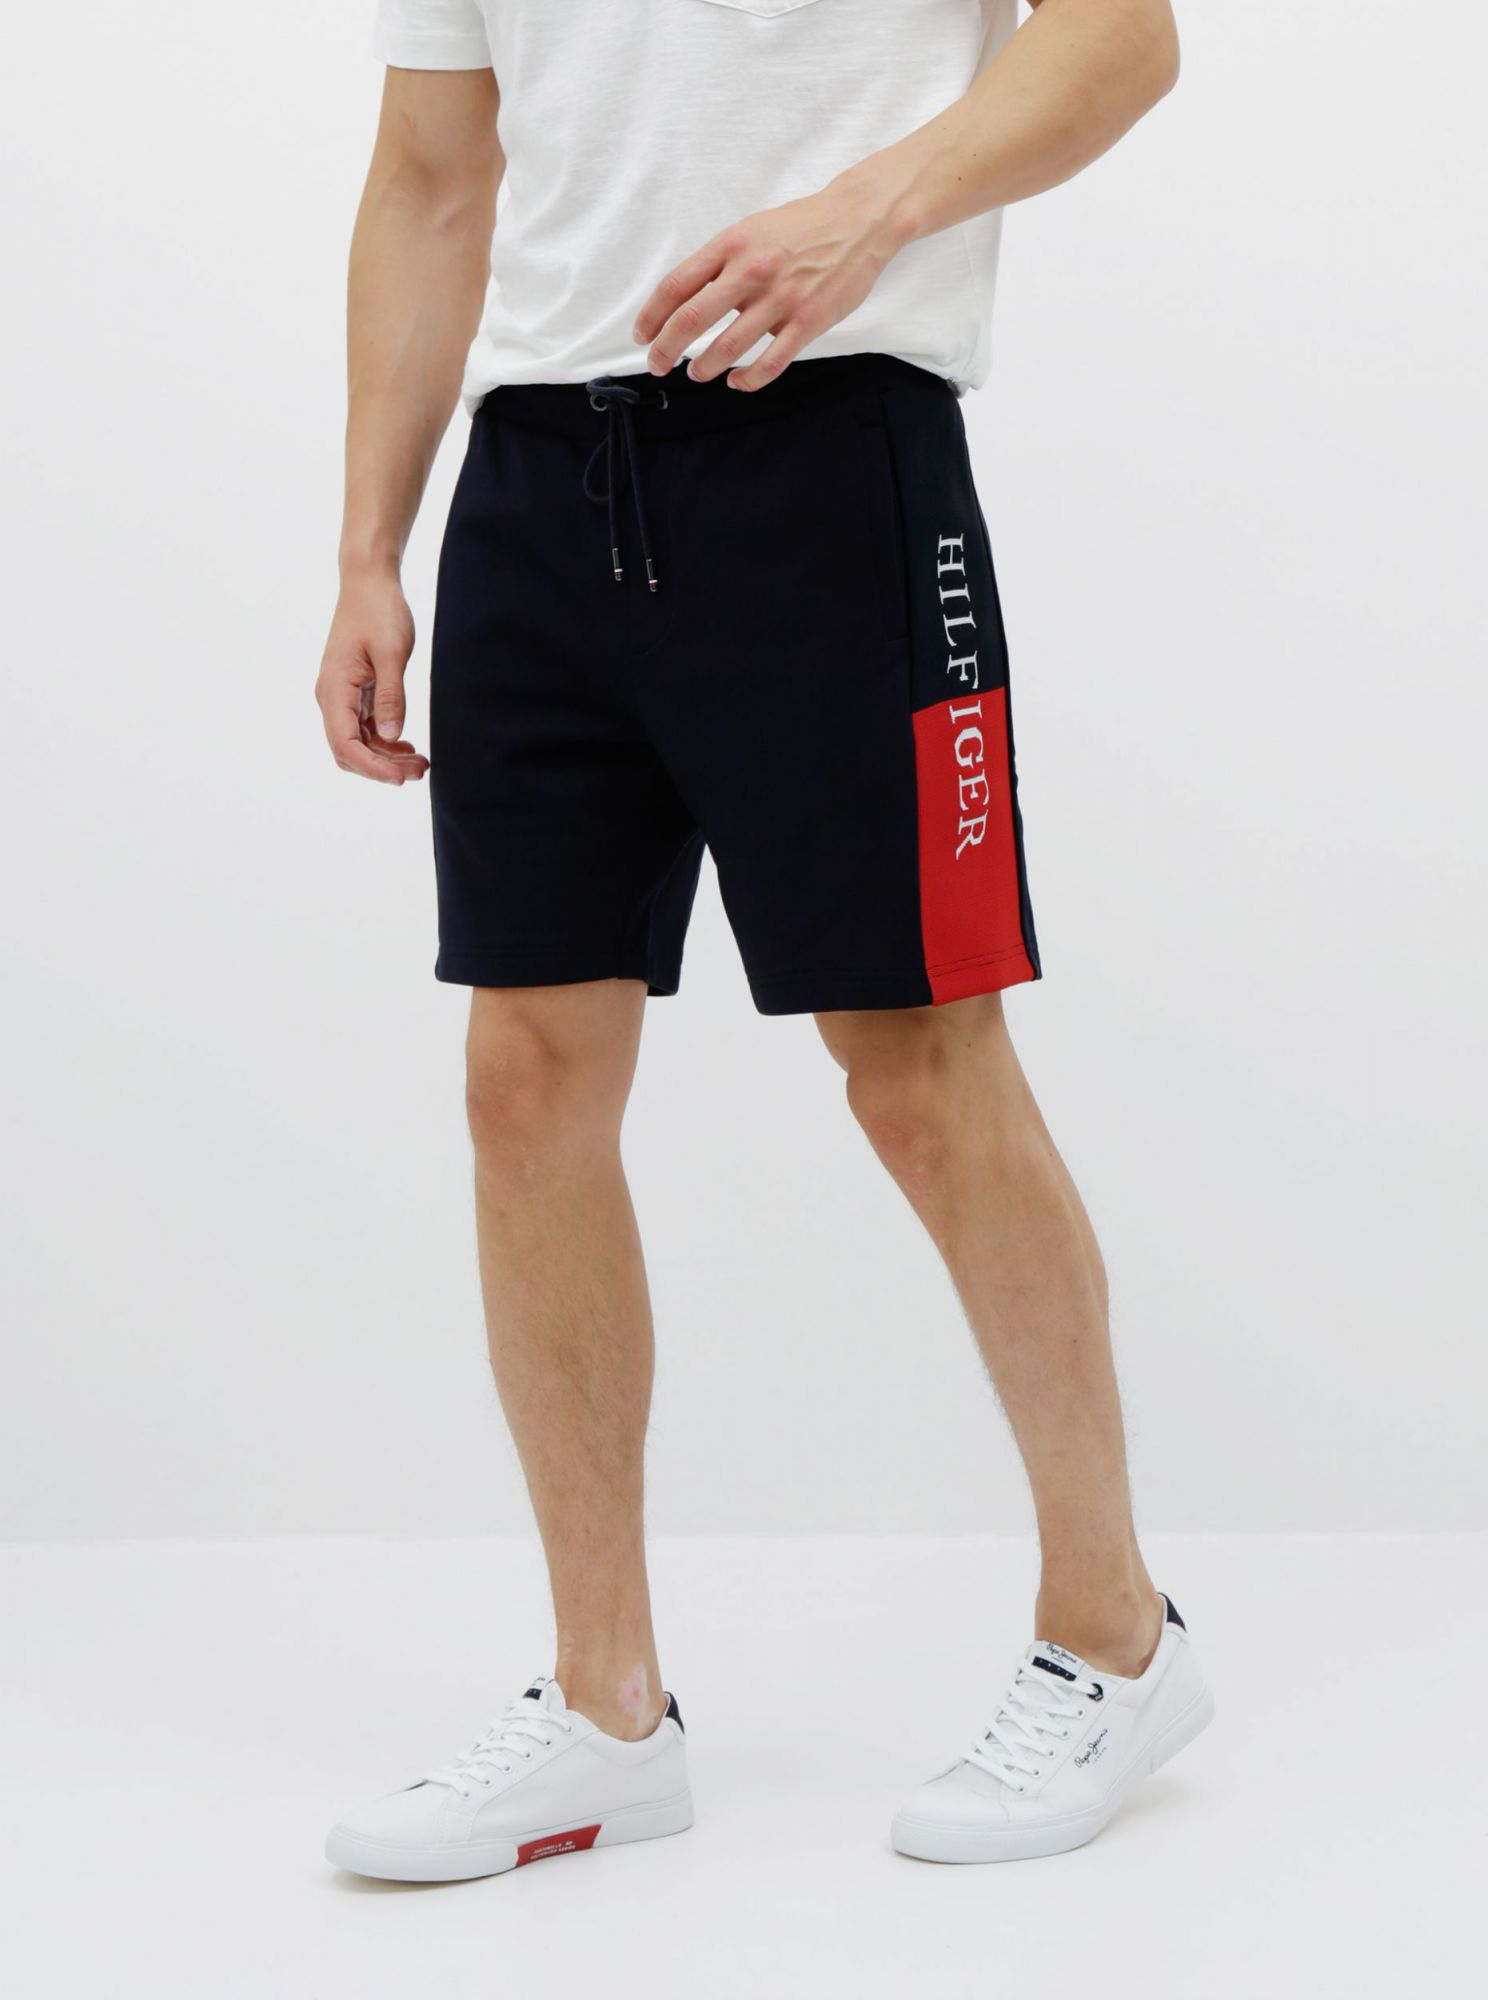 Tommy Hilfiger blue tracksuit men´s shorts